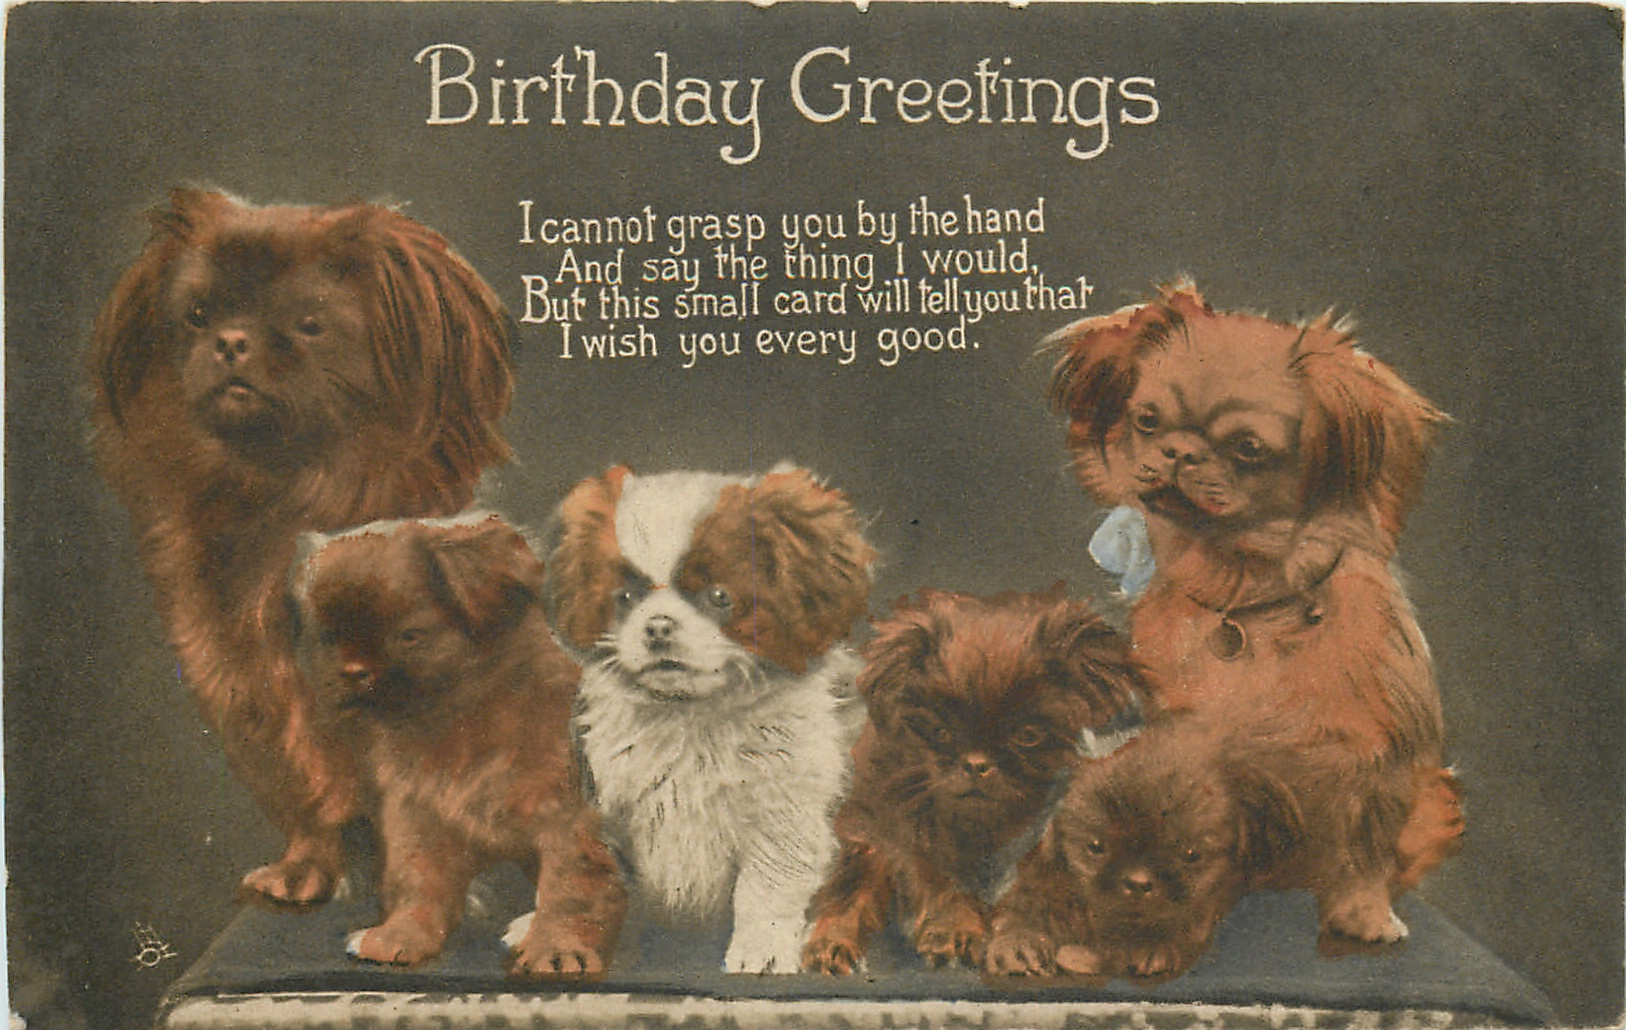 Birthday greetings six pekingese dogs tuckdb postcards xfull size images kristyandbryce Choice Image